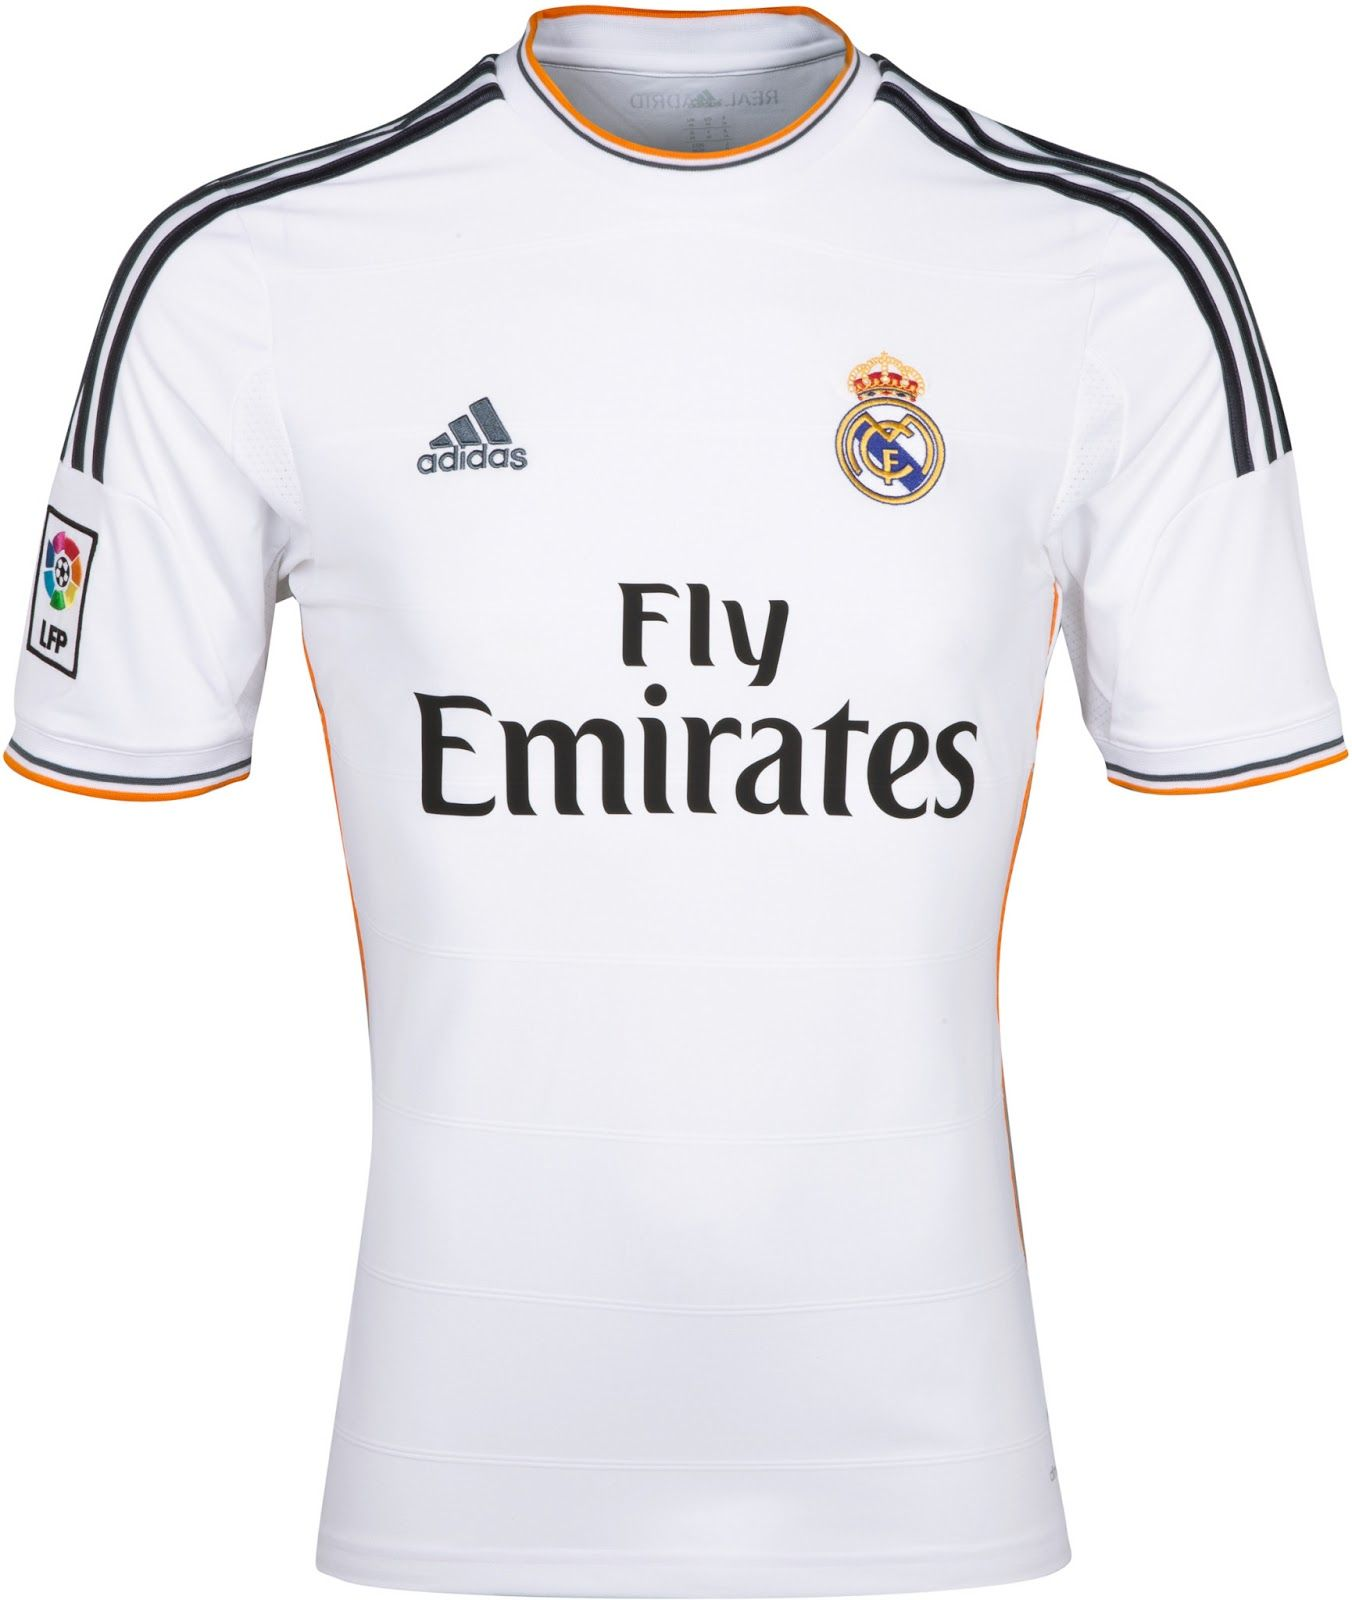 Camiseta Real Madrid  486b76d115f78